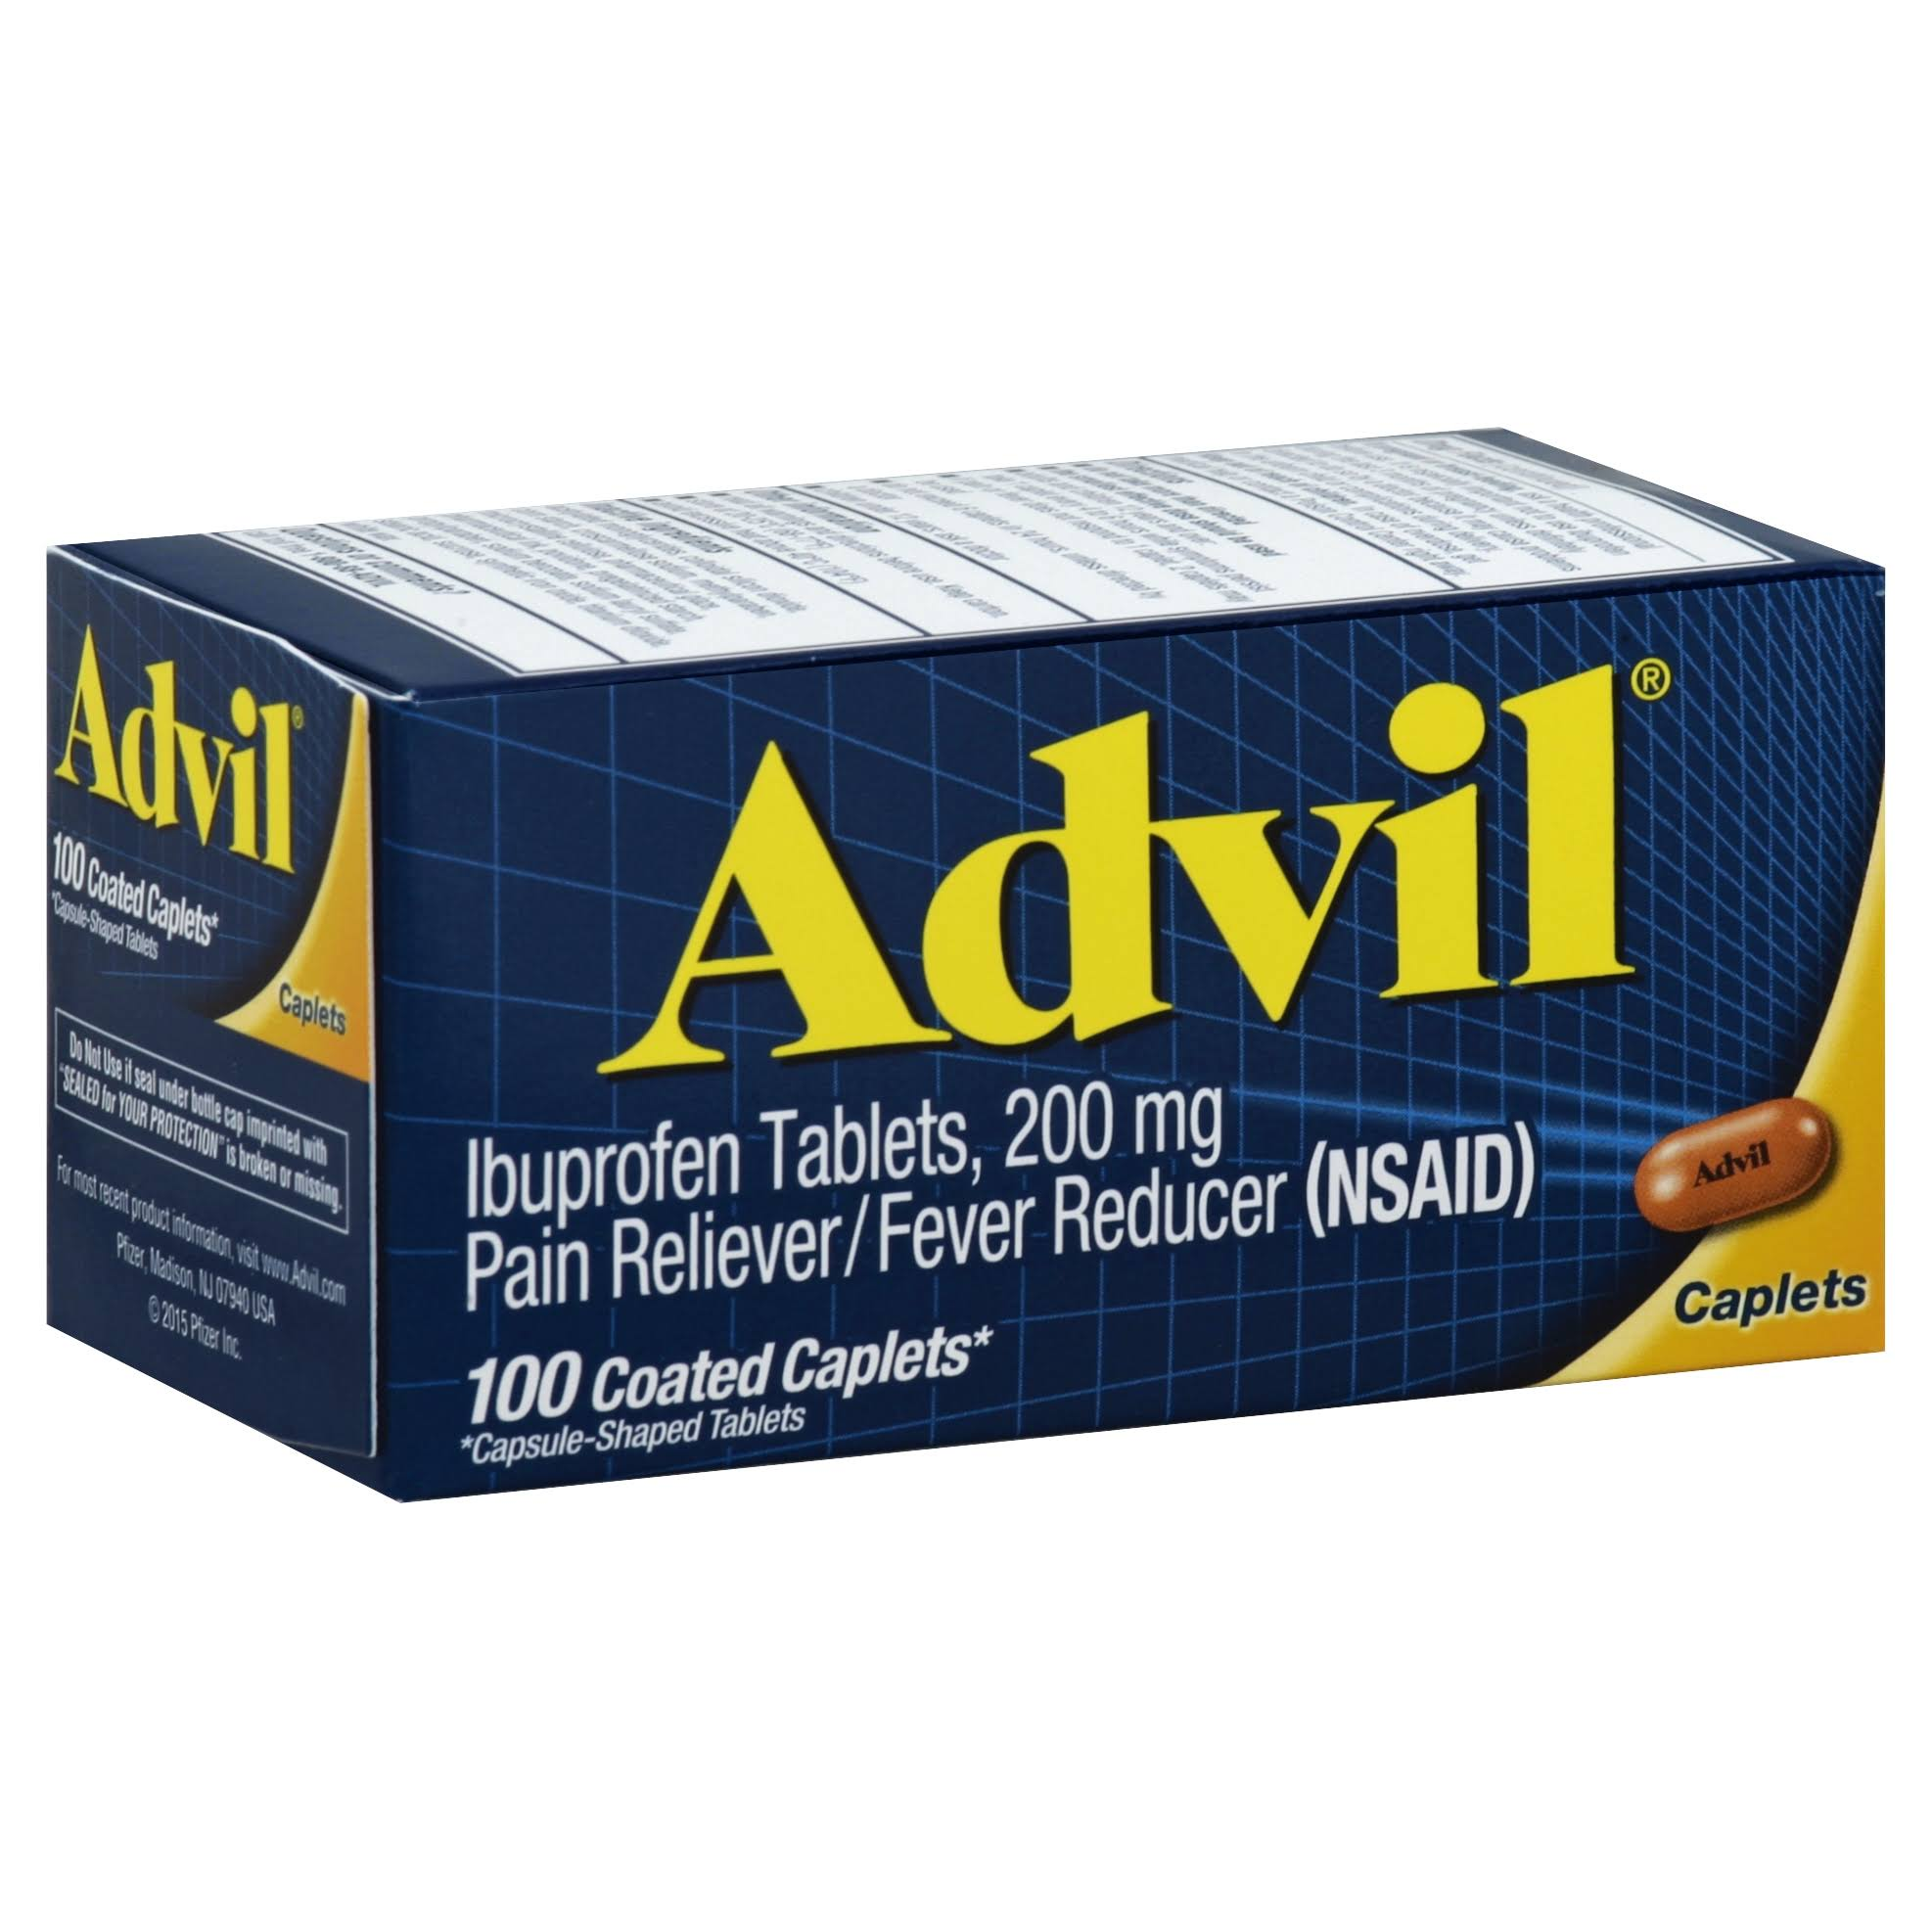 Advil Pain Reliever Fever Reducer - 200mg, 100ct